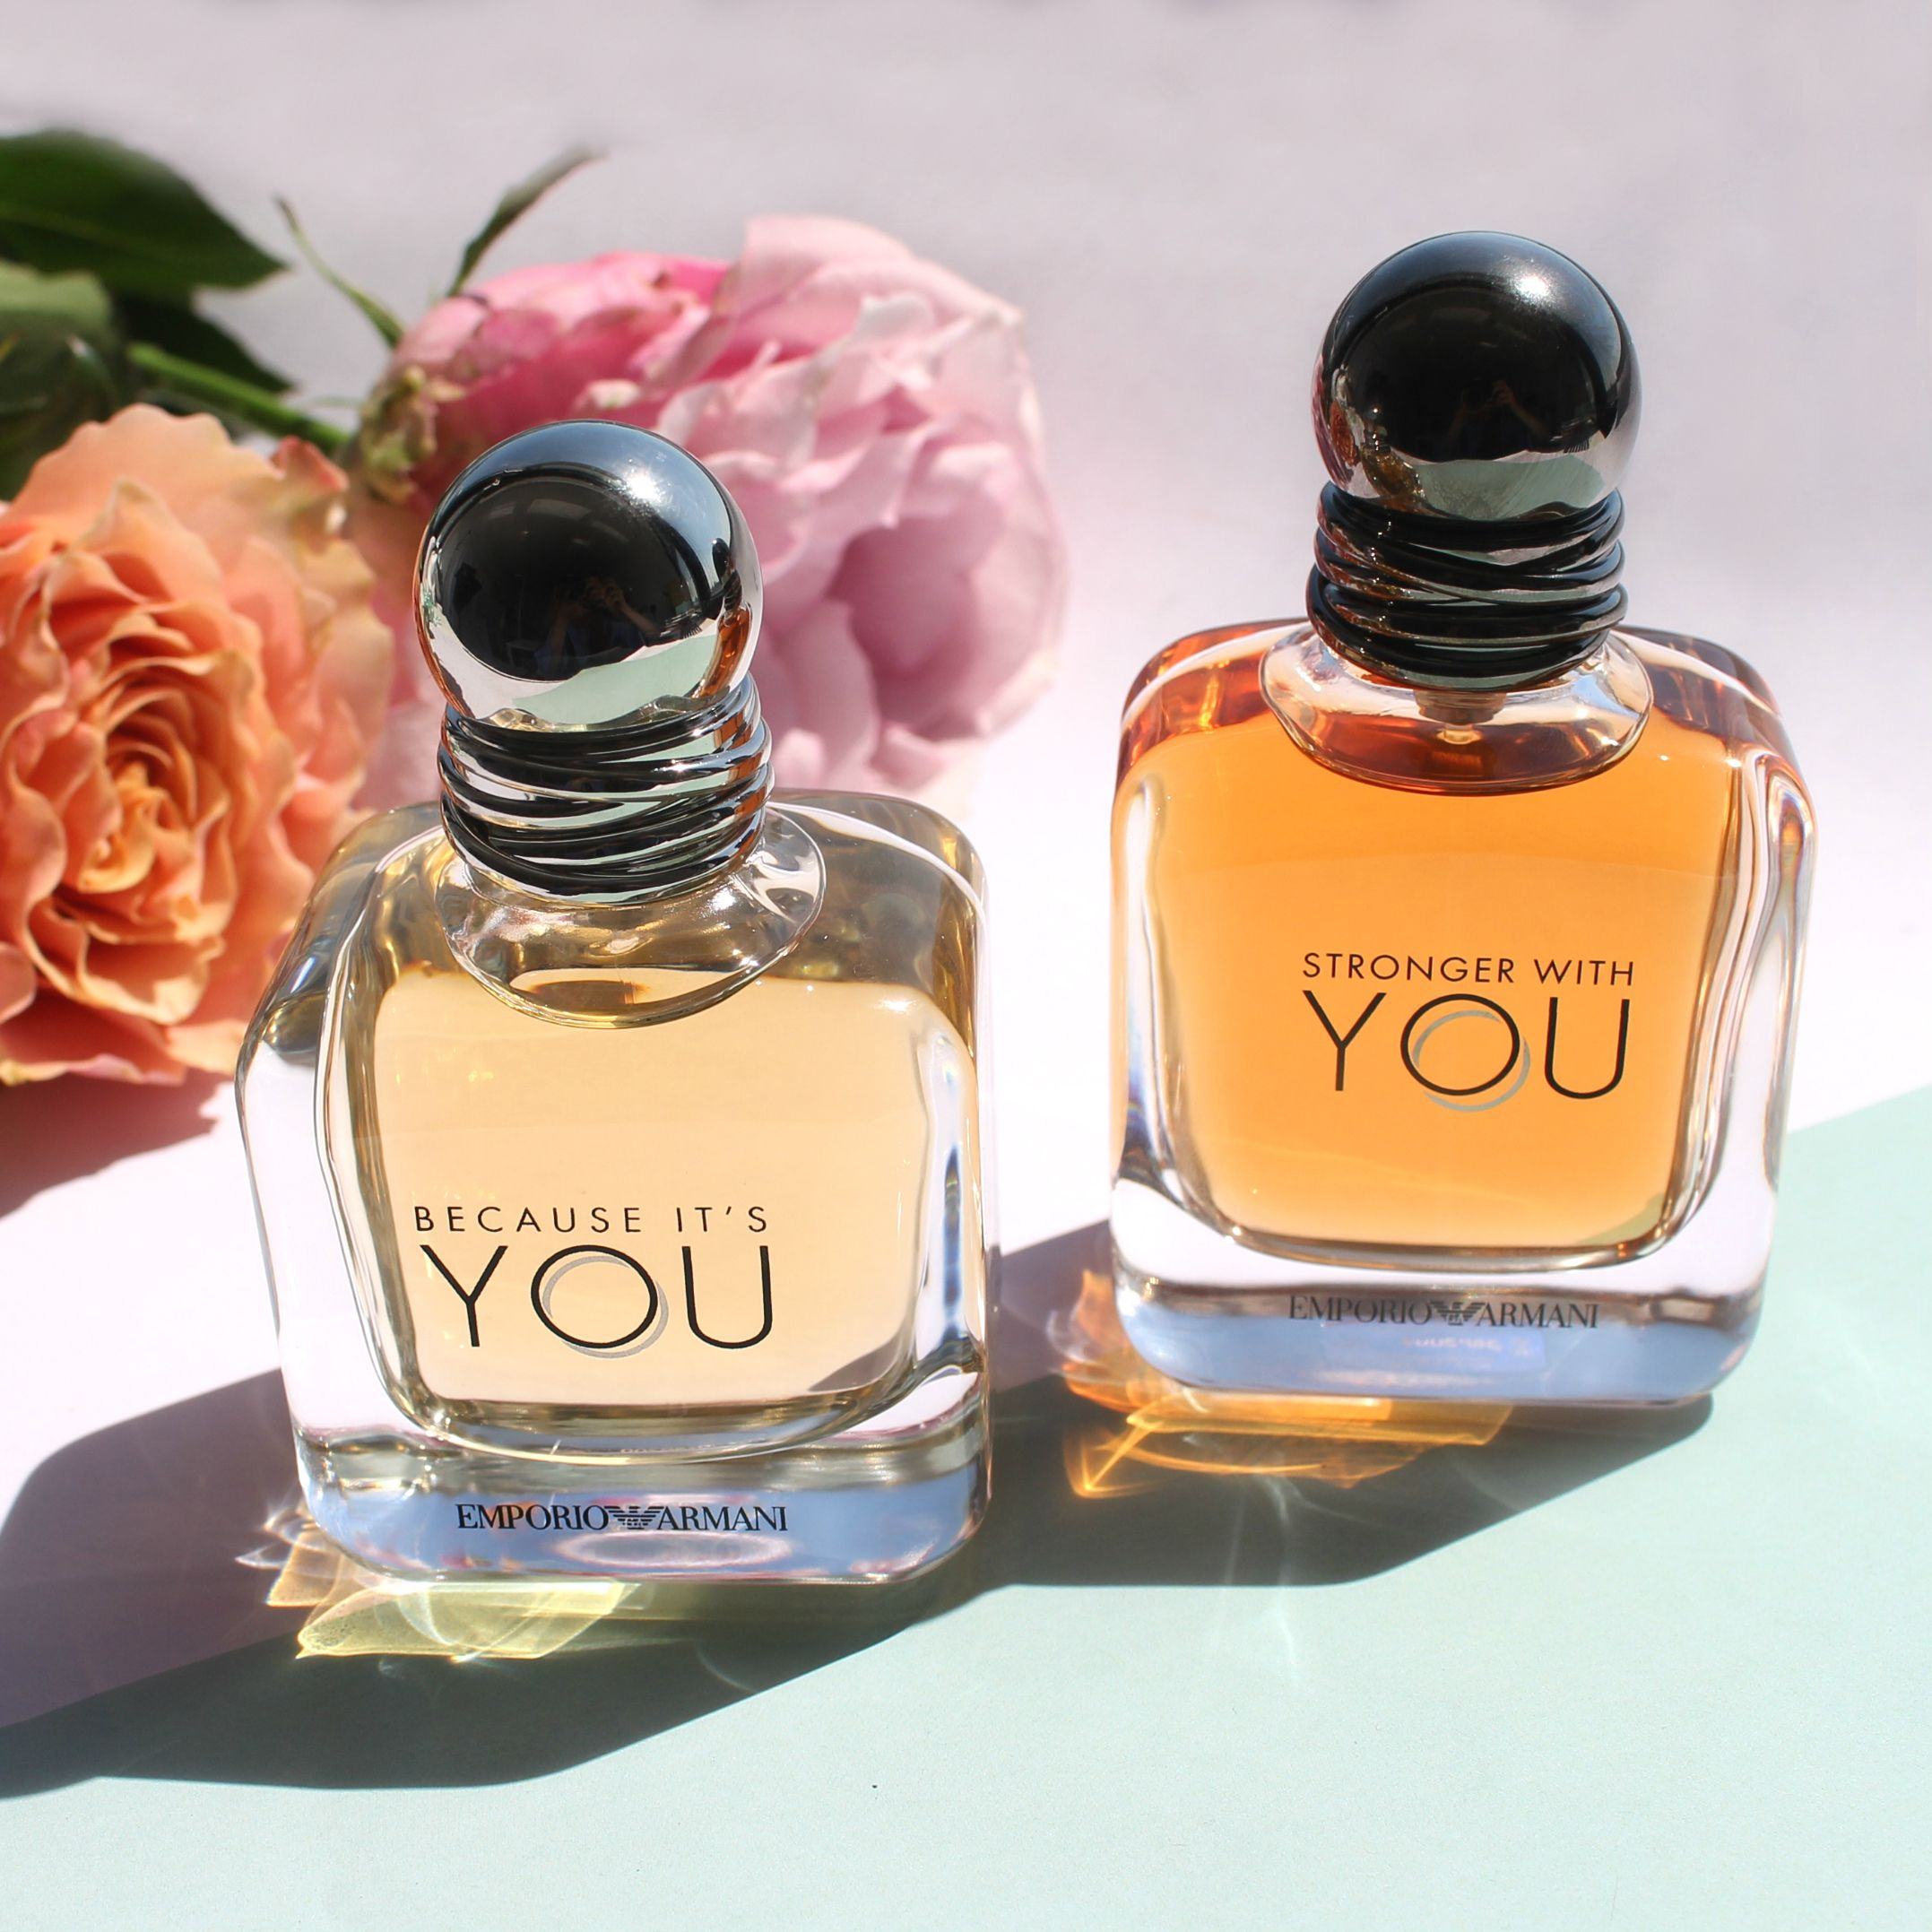 Perfume Emporio Armani Beacause Its You Stronger With You